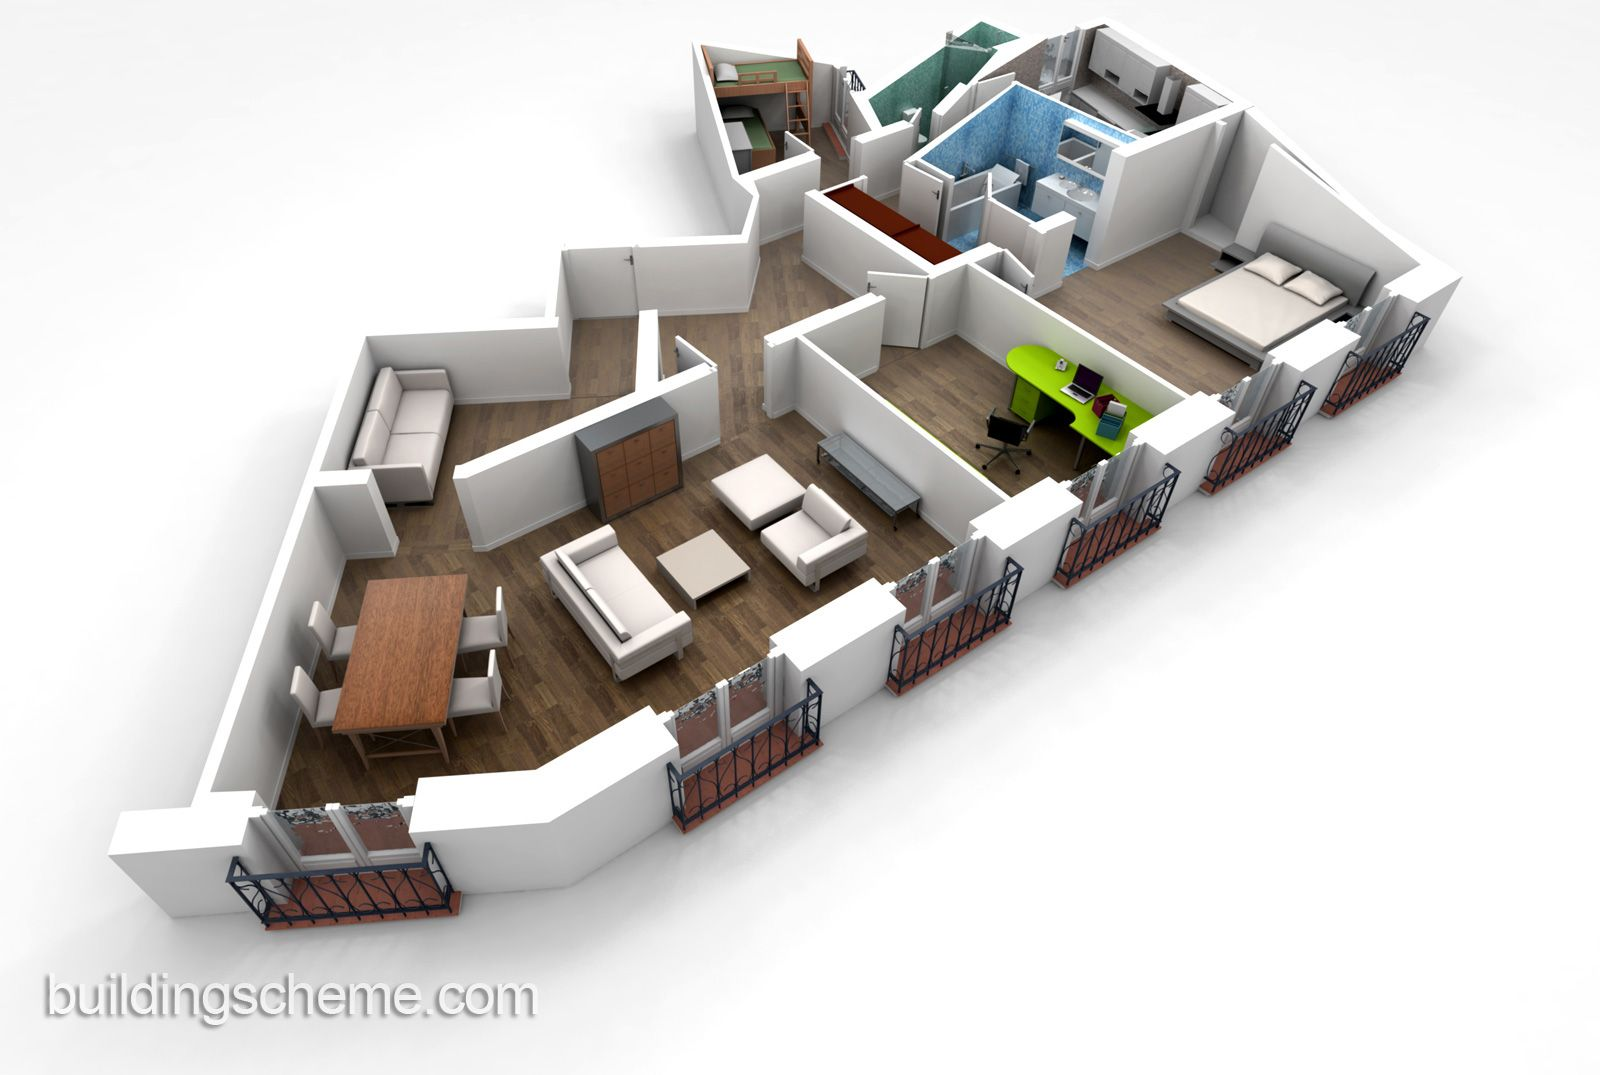 Home design 3d app ideas | Projects to Try | Pinterest